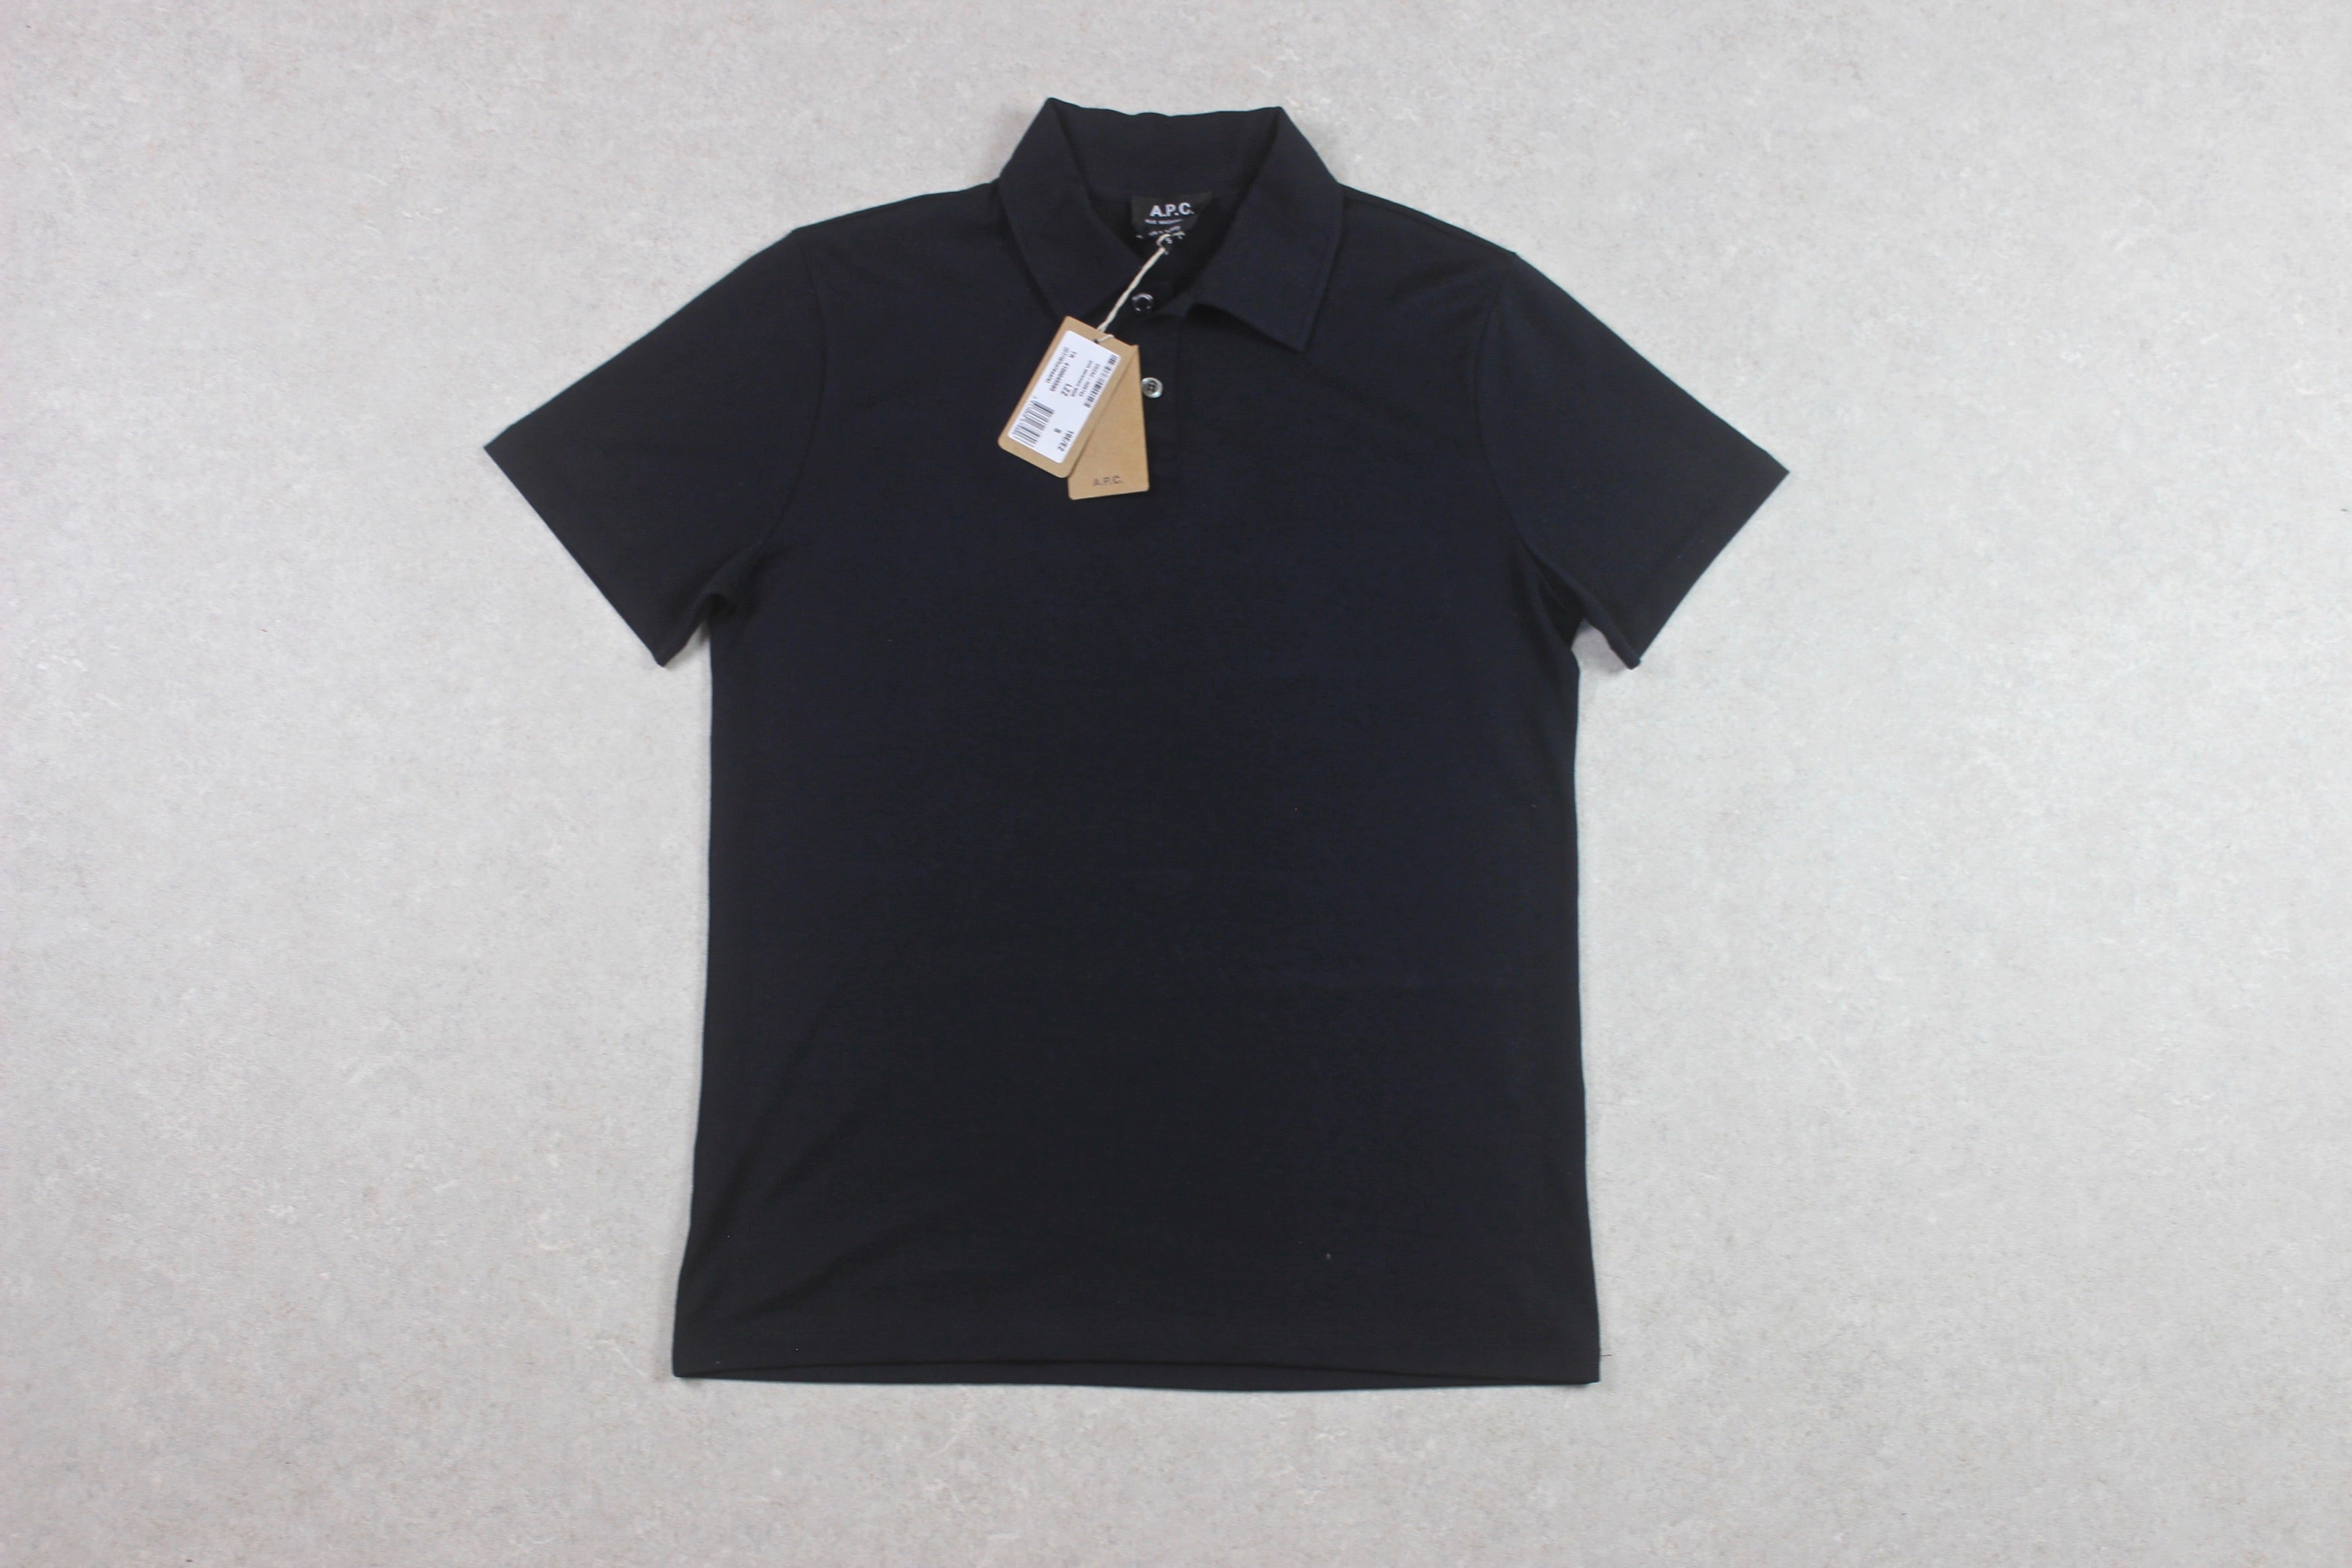 A.P.C. - Polo Shirt - Navy Blue - Small - Brand New